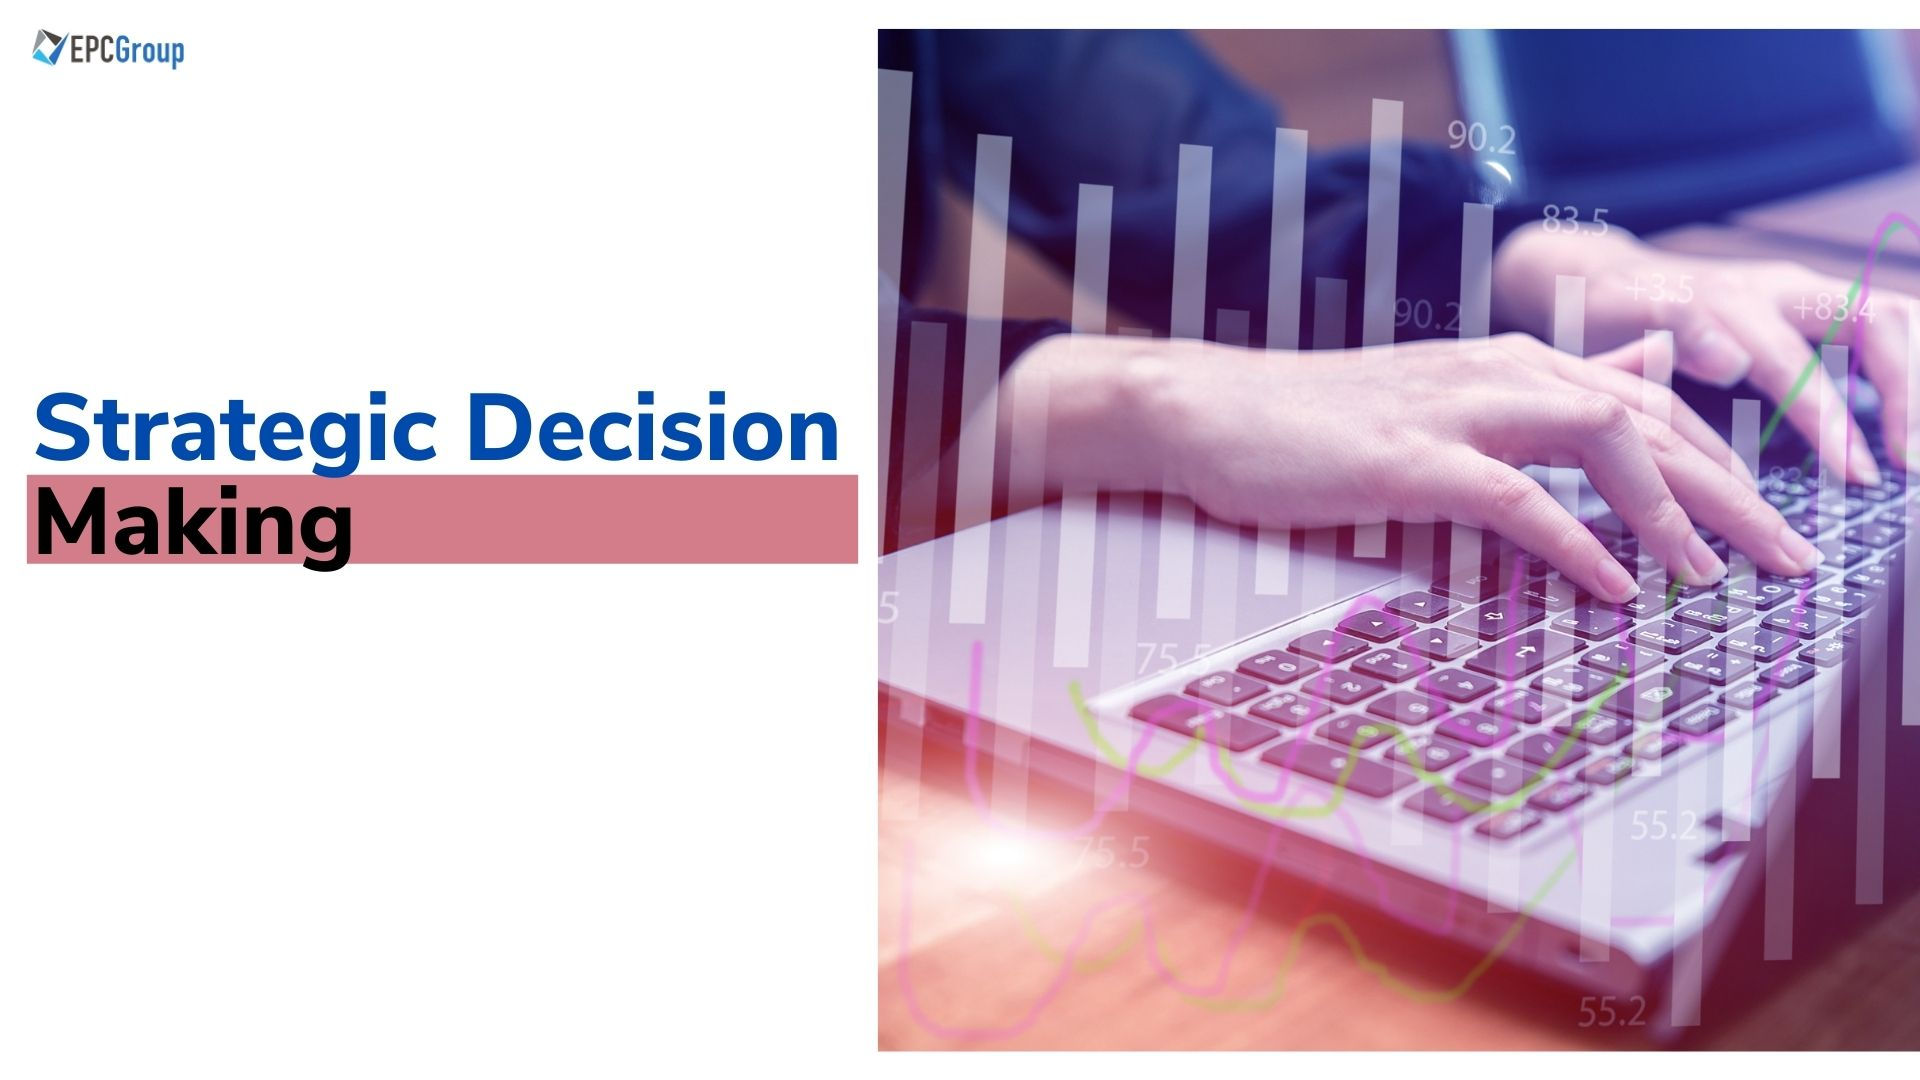 Top 10 Reasons Why Strategic Decision Making Is Important for Organization - thumb image